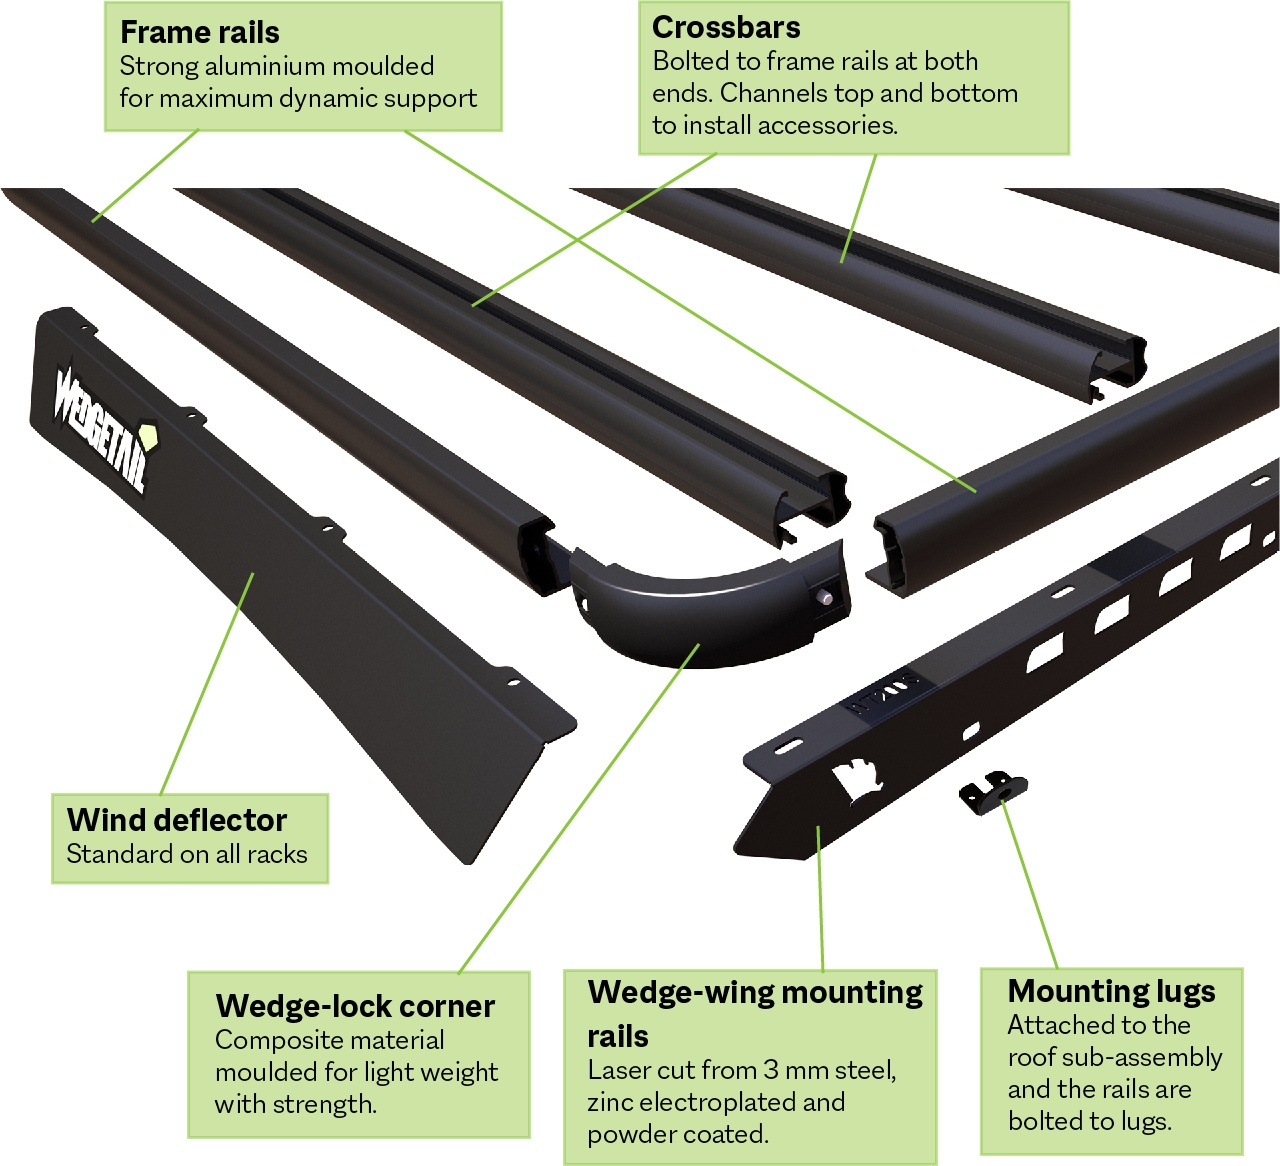 Exploded view of the front corner of a Wedgetail rack showing the components that make up the rack with names and descriptions placed on each component.